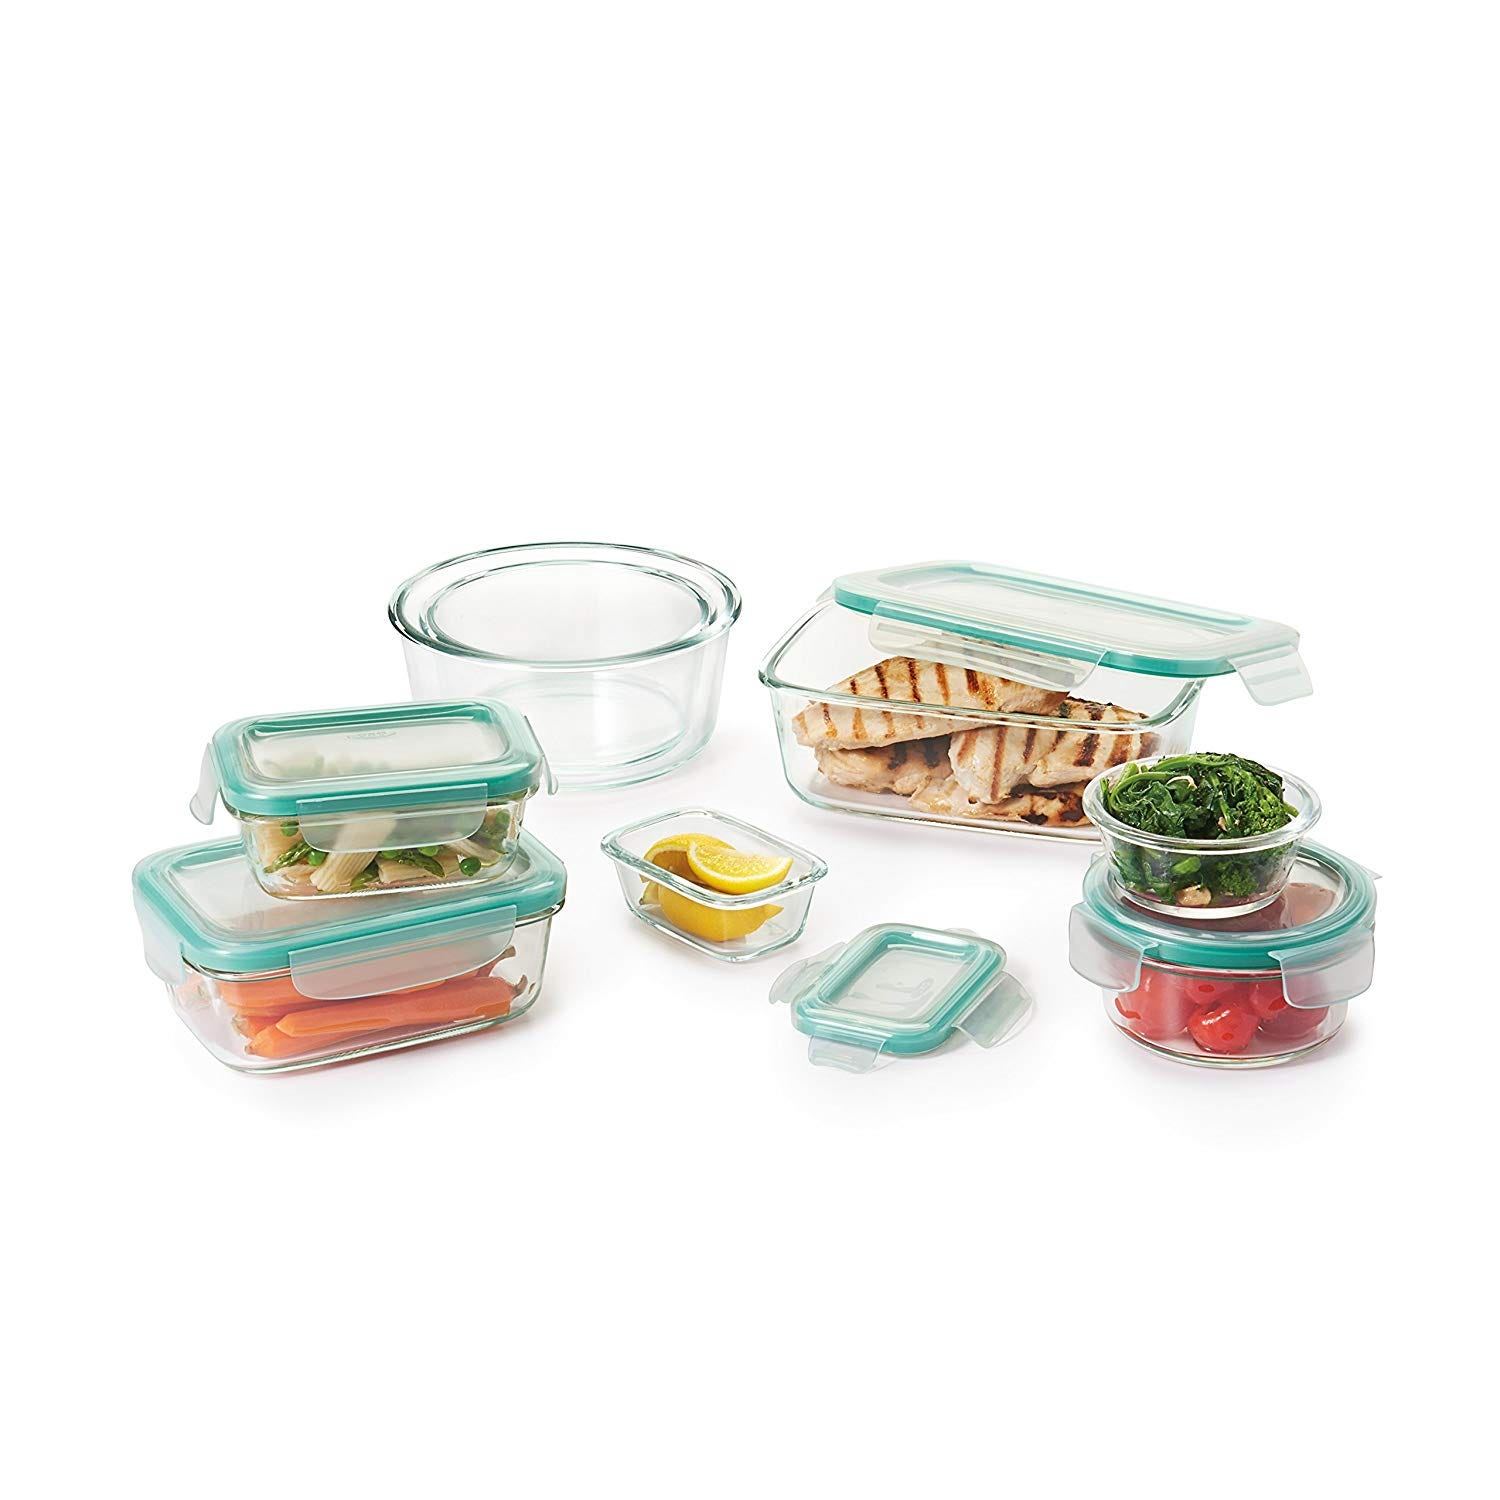 OXO Good Grips 16 Piece Smart Seal Leakproof Glass Set